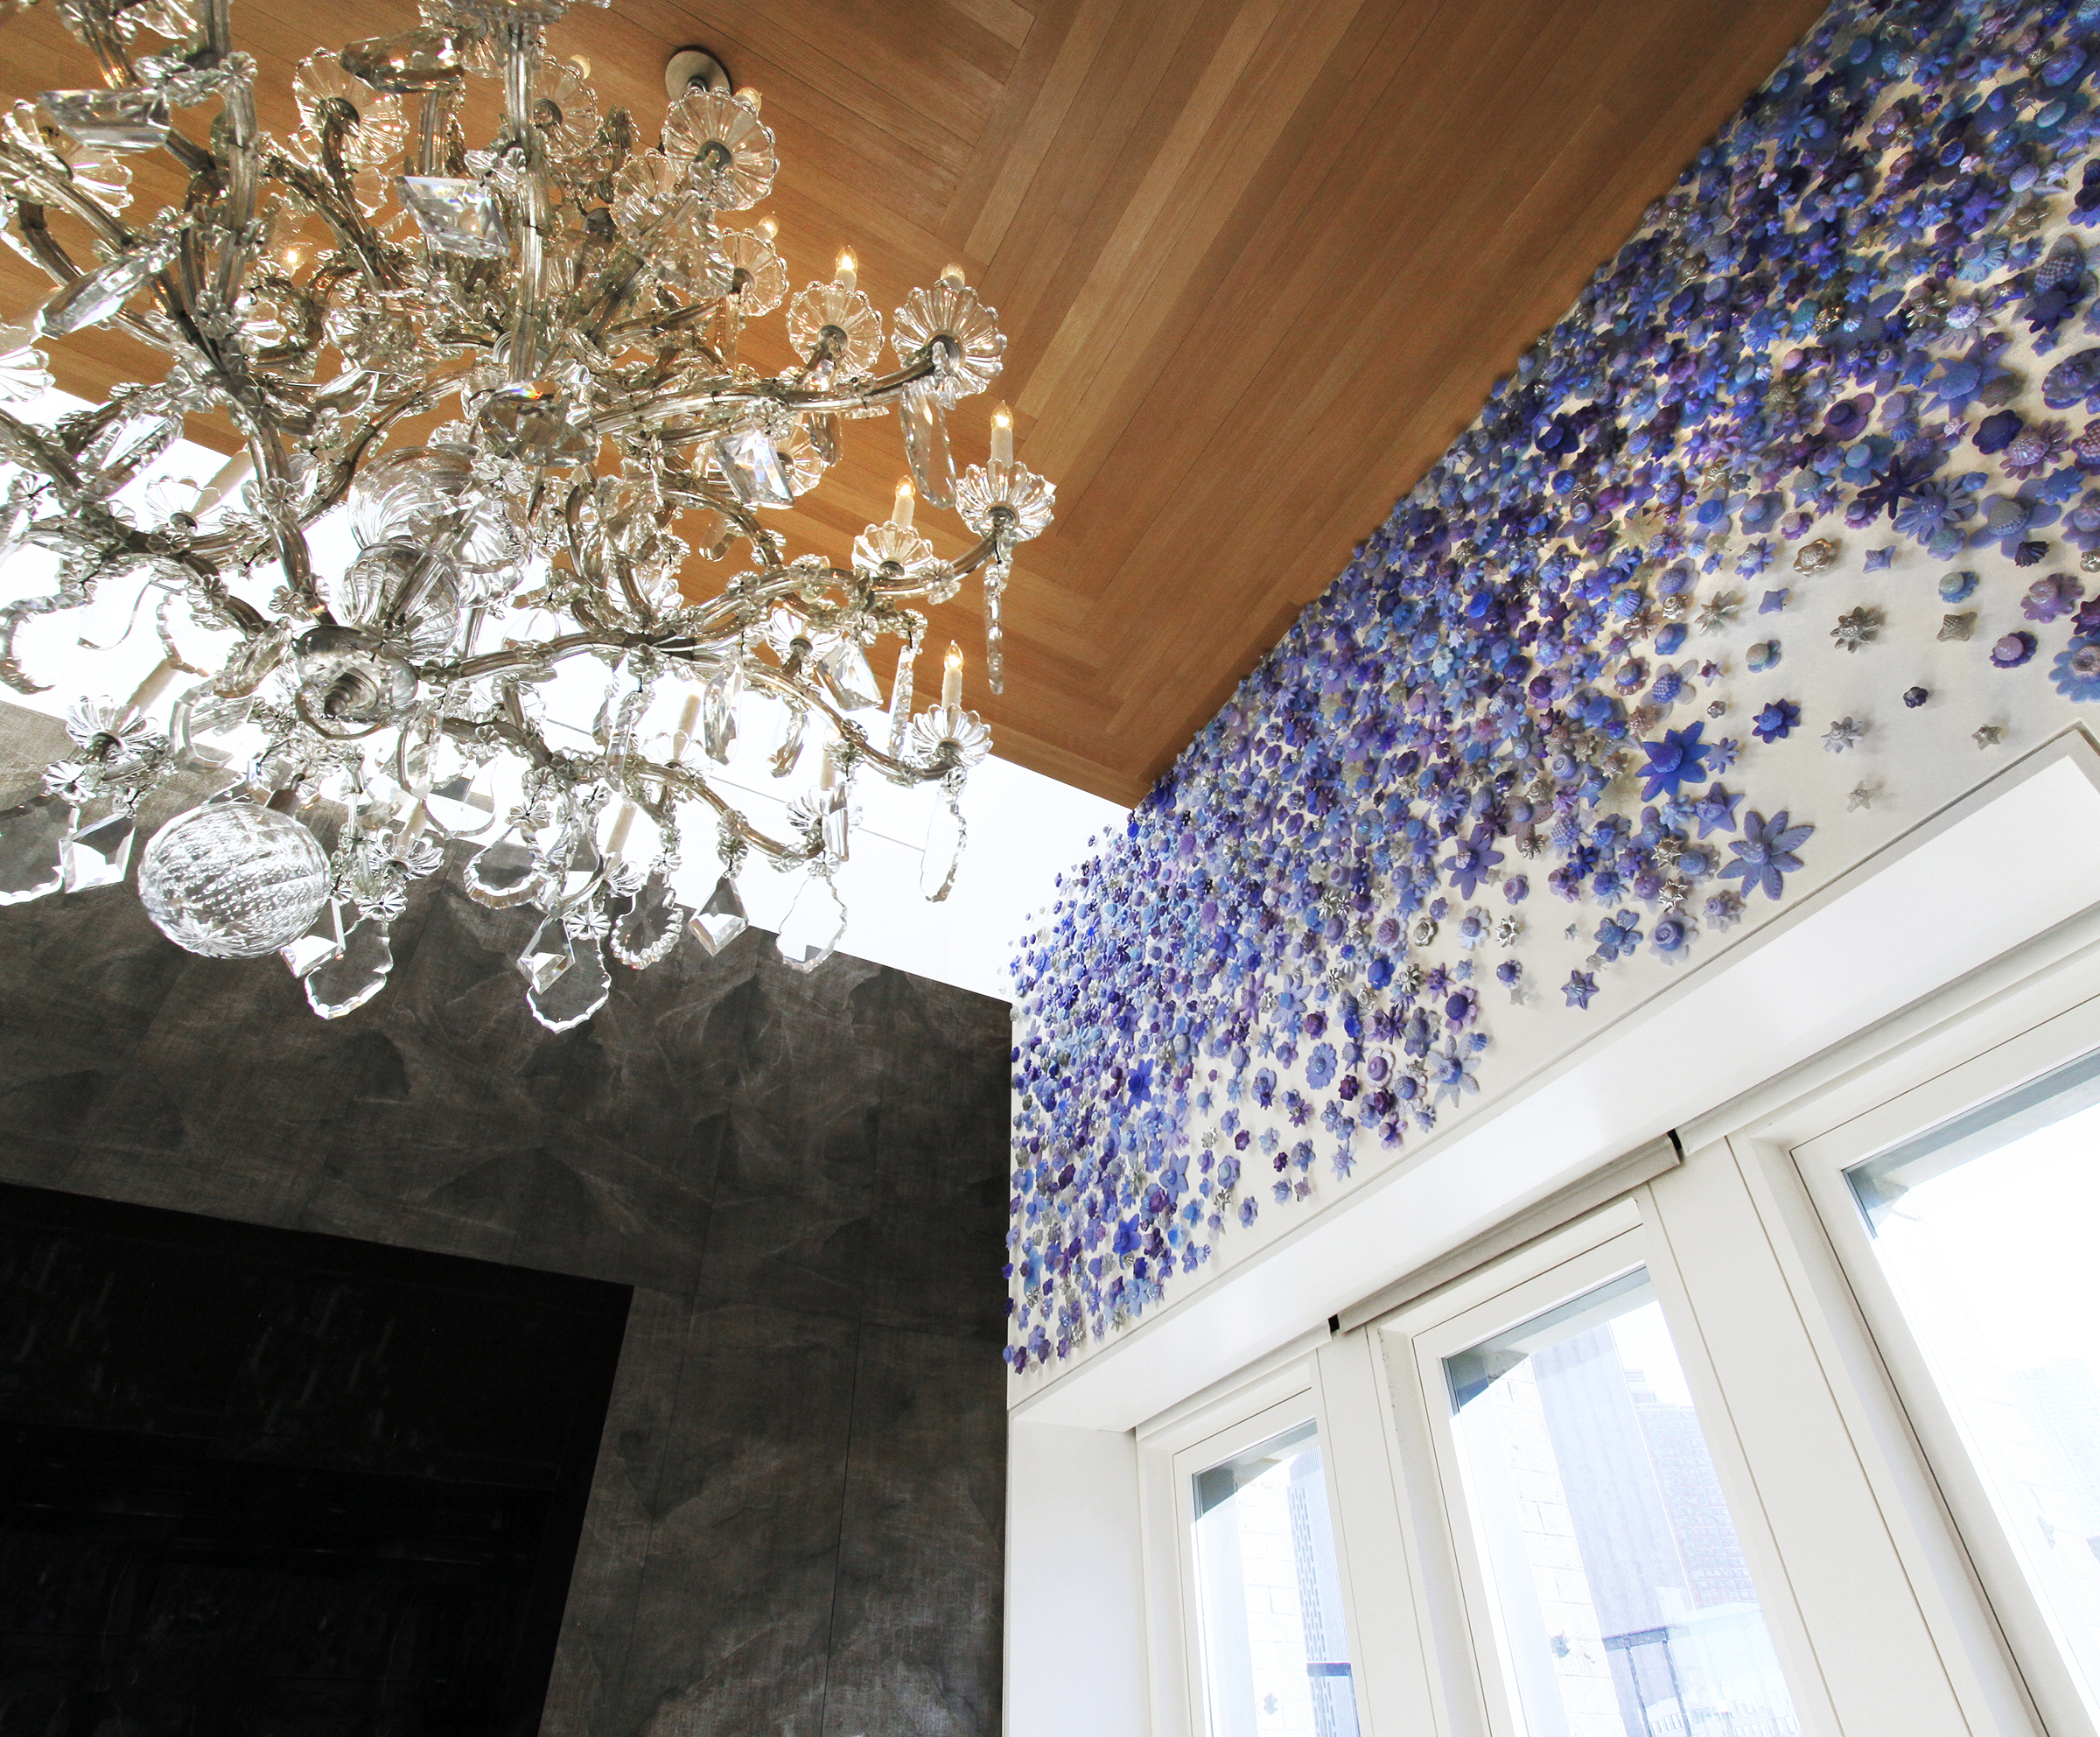 16_FOX_Tribeca Wisteria chandelier.jpg